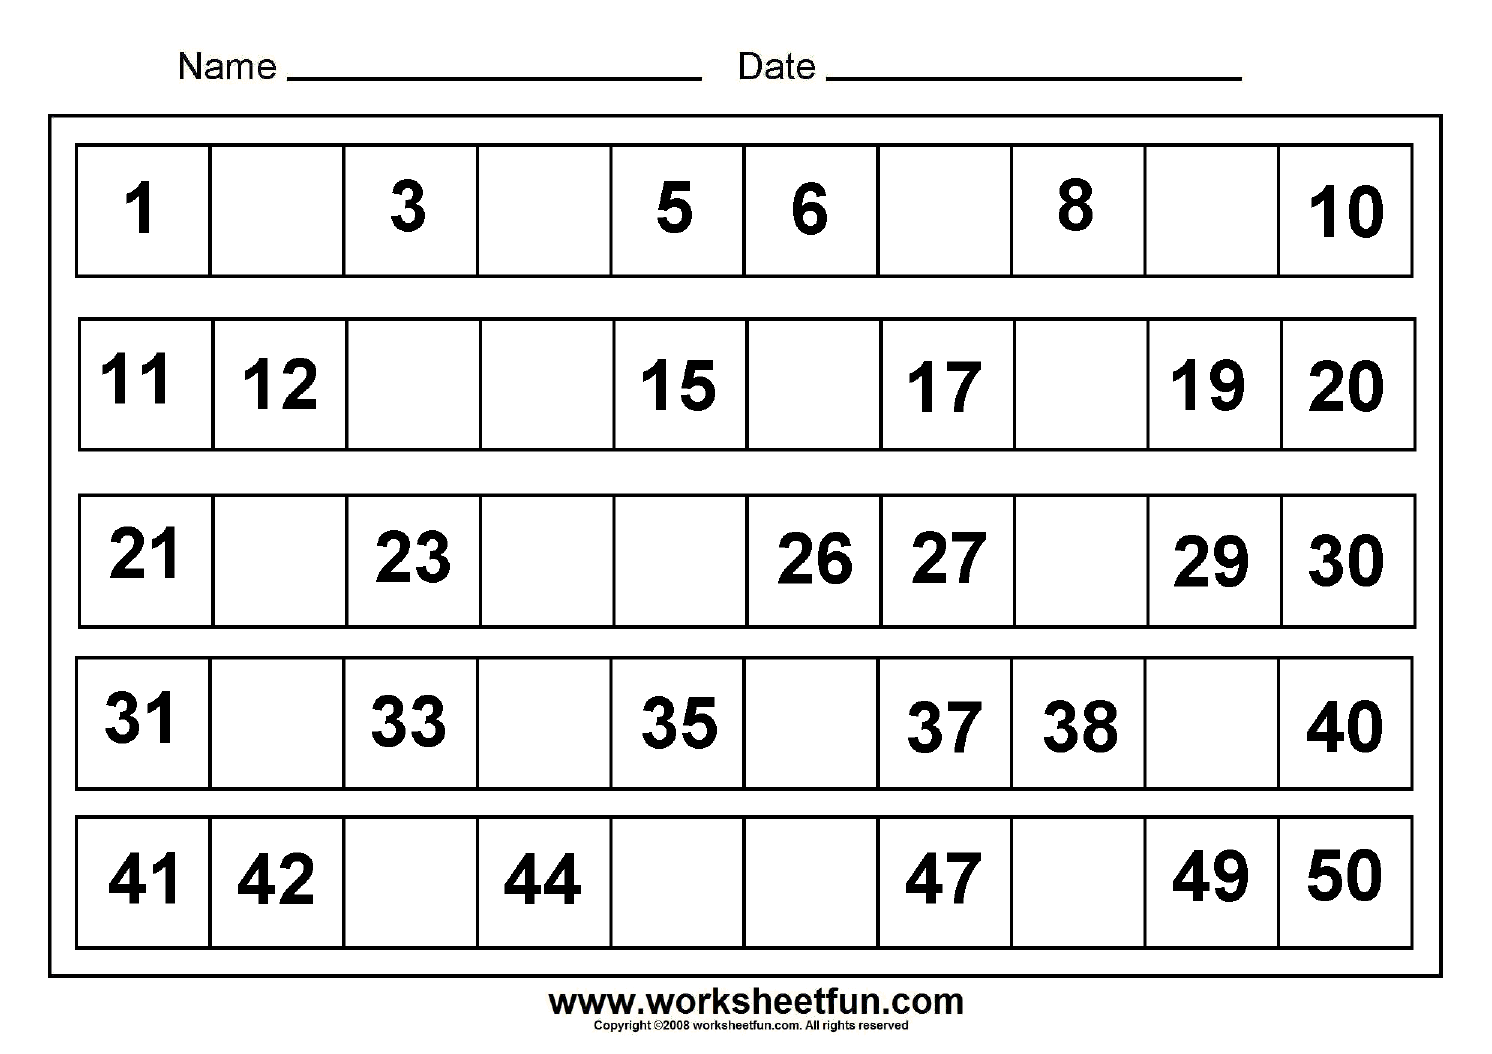 Missing+Numbers+1-50 | numbers | Pinterest | Math, Worksheets and ...